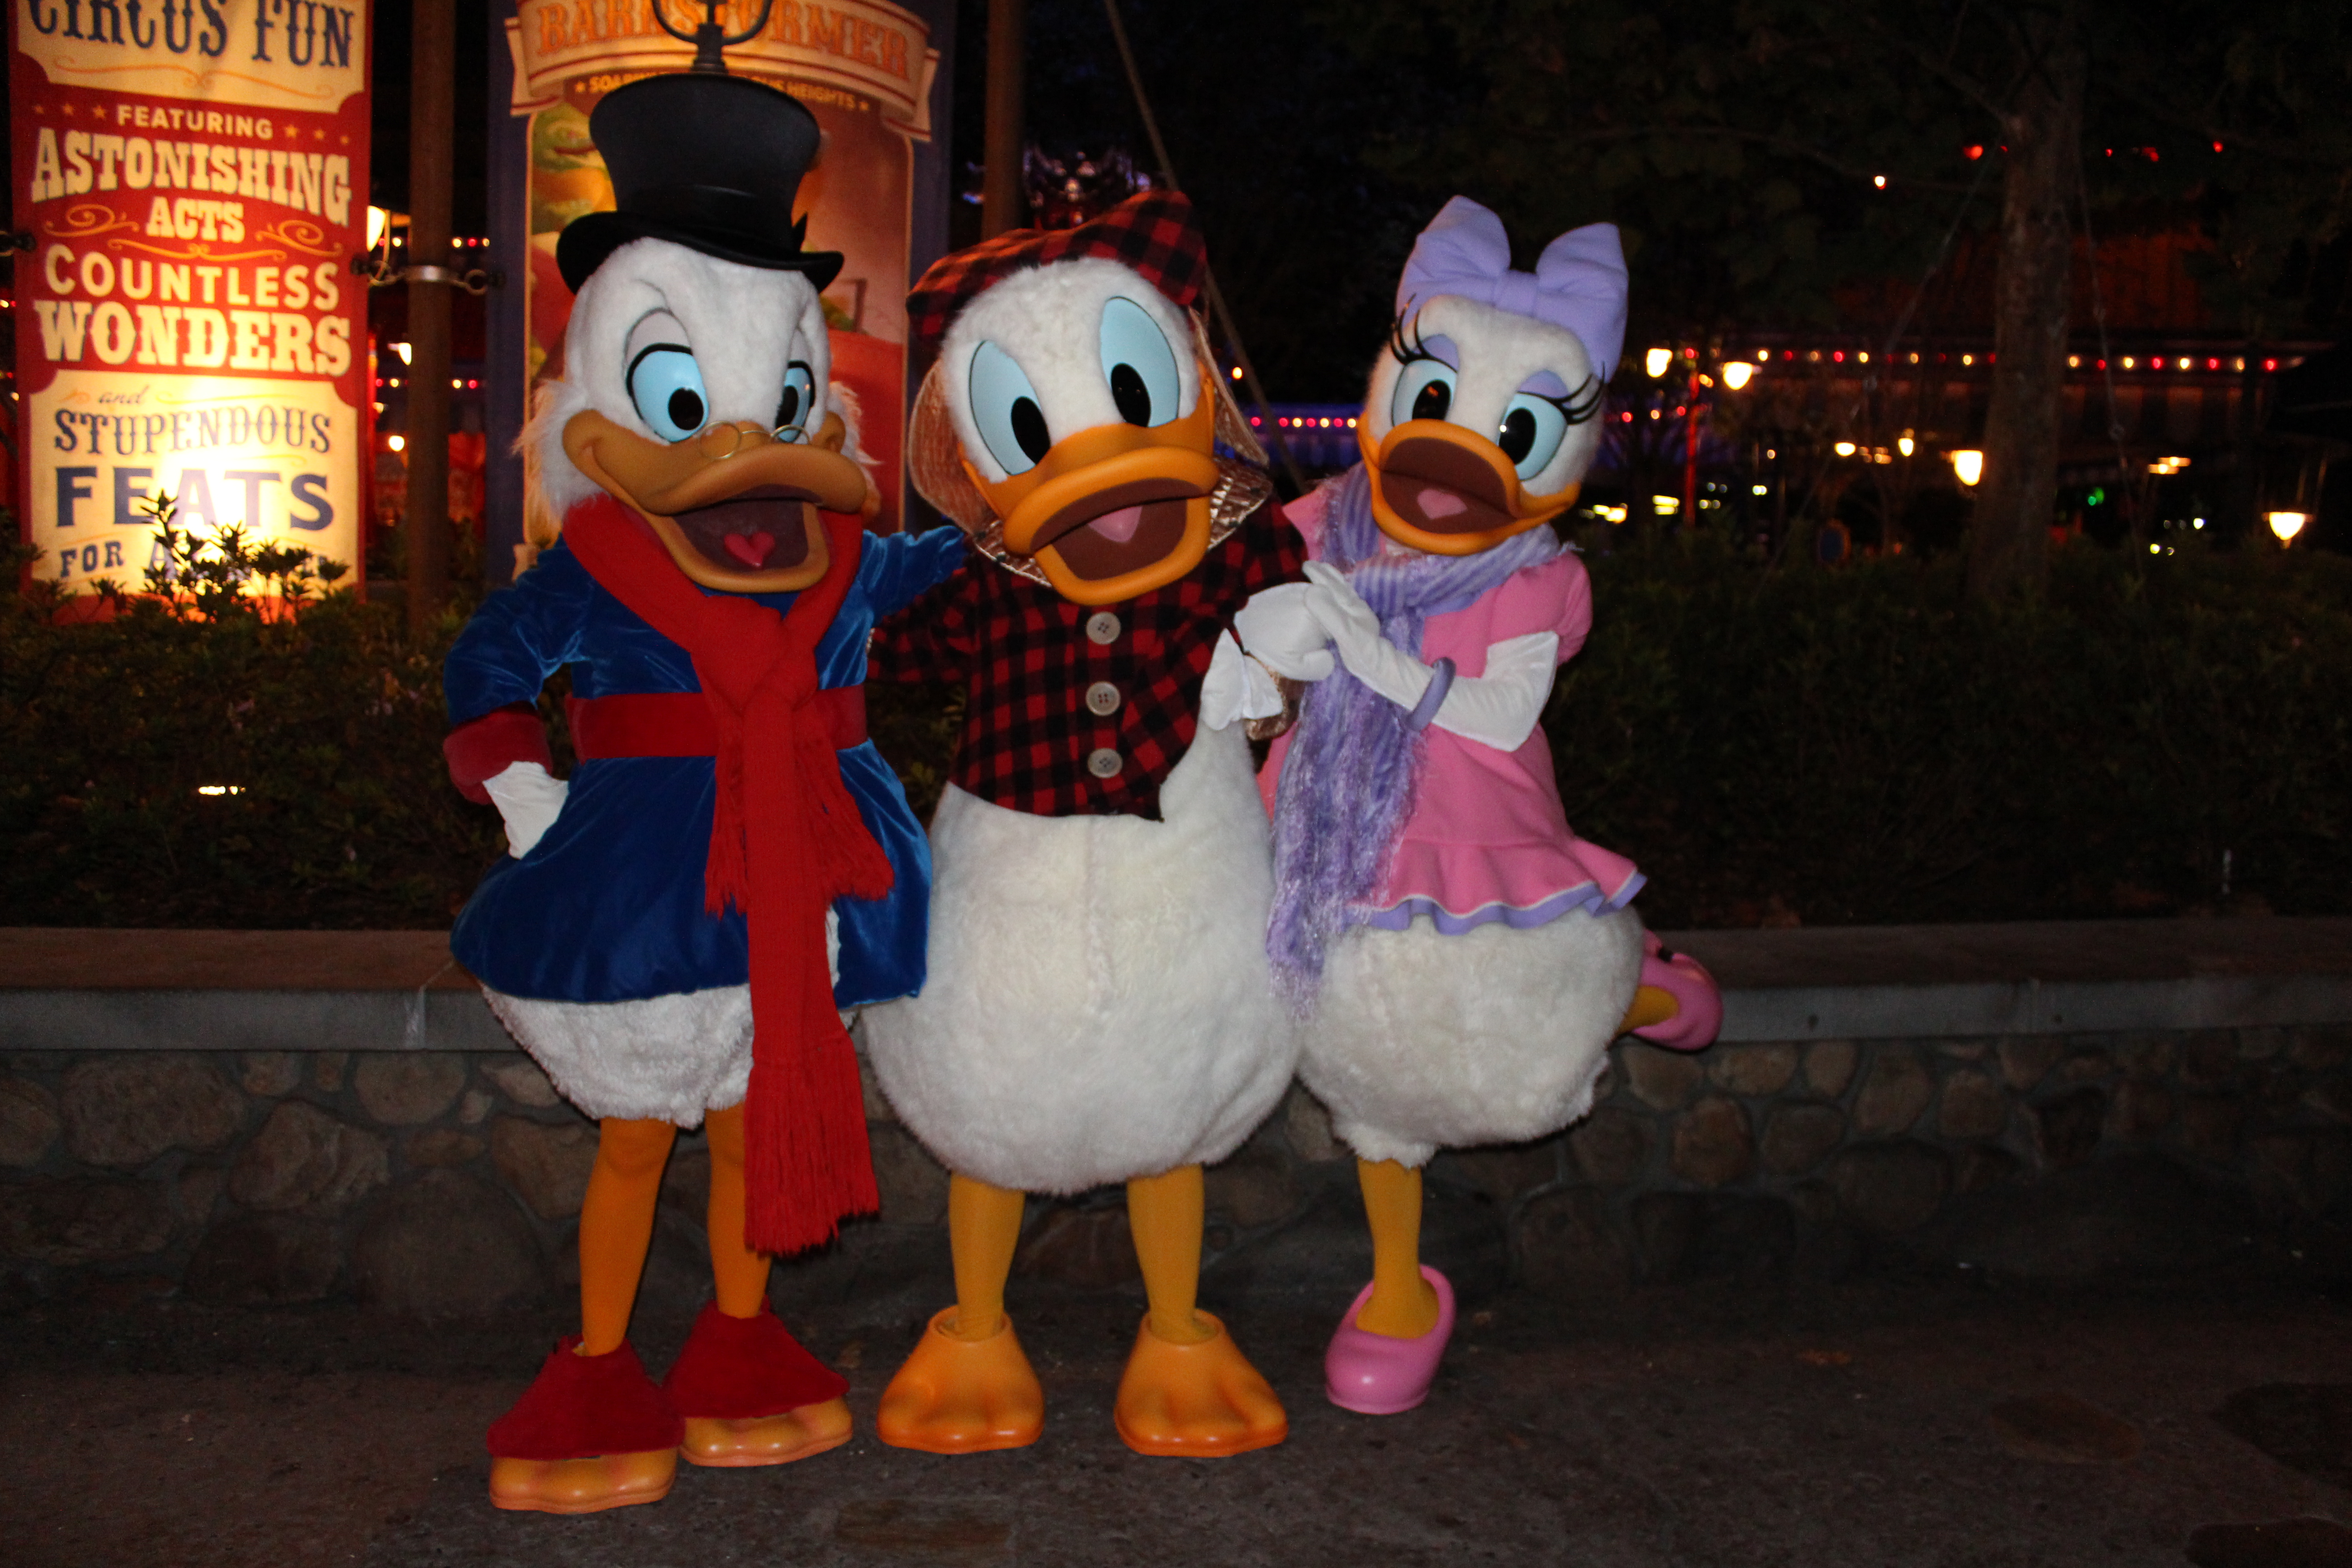 Scrooge, Meet Donald, and Old Meet Daisy